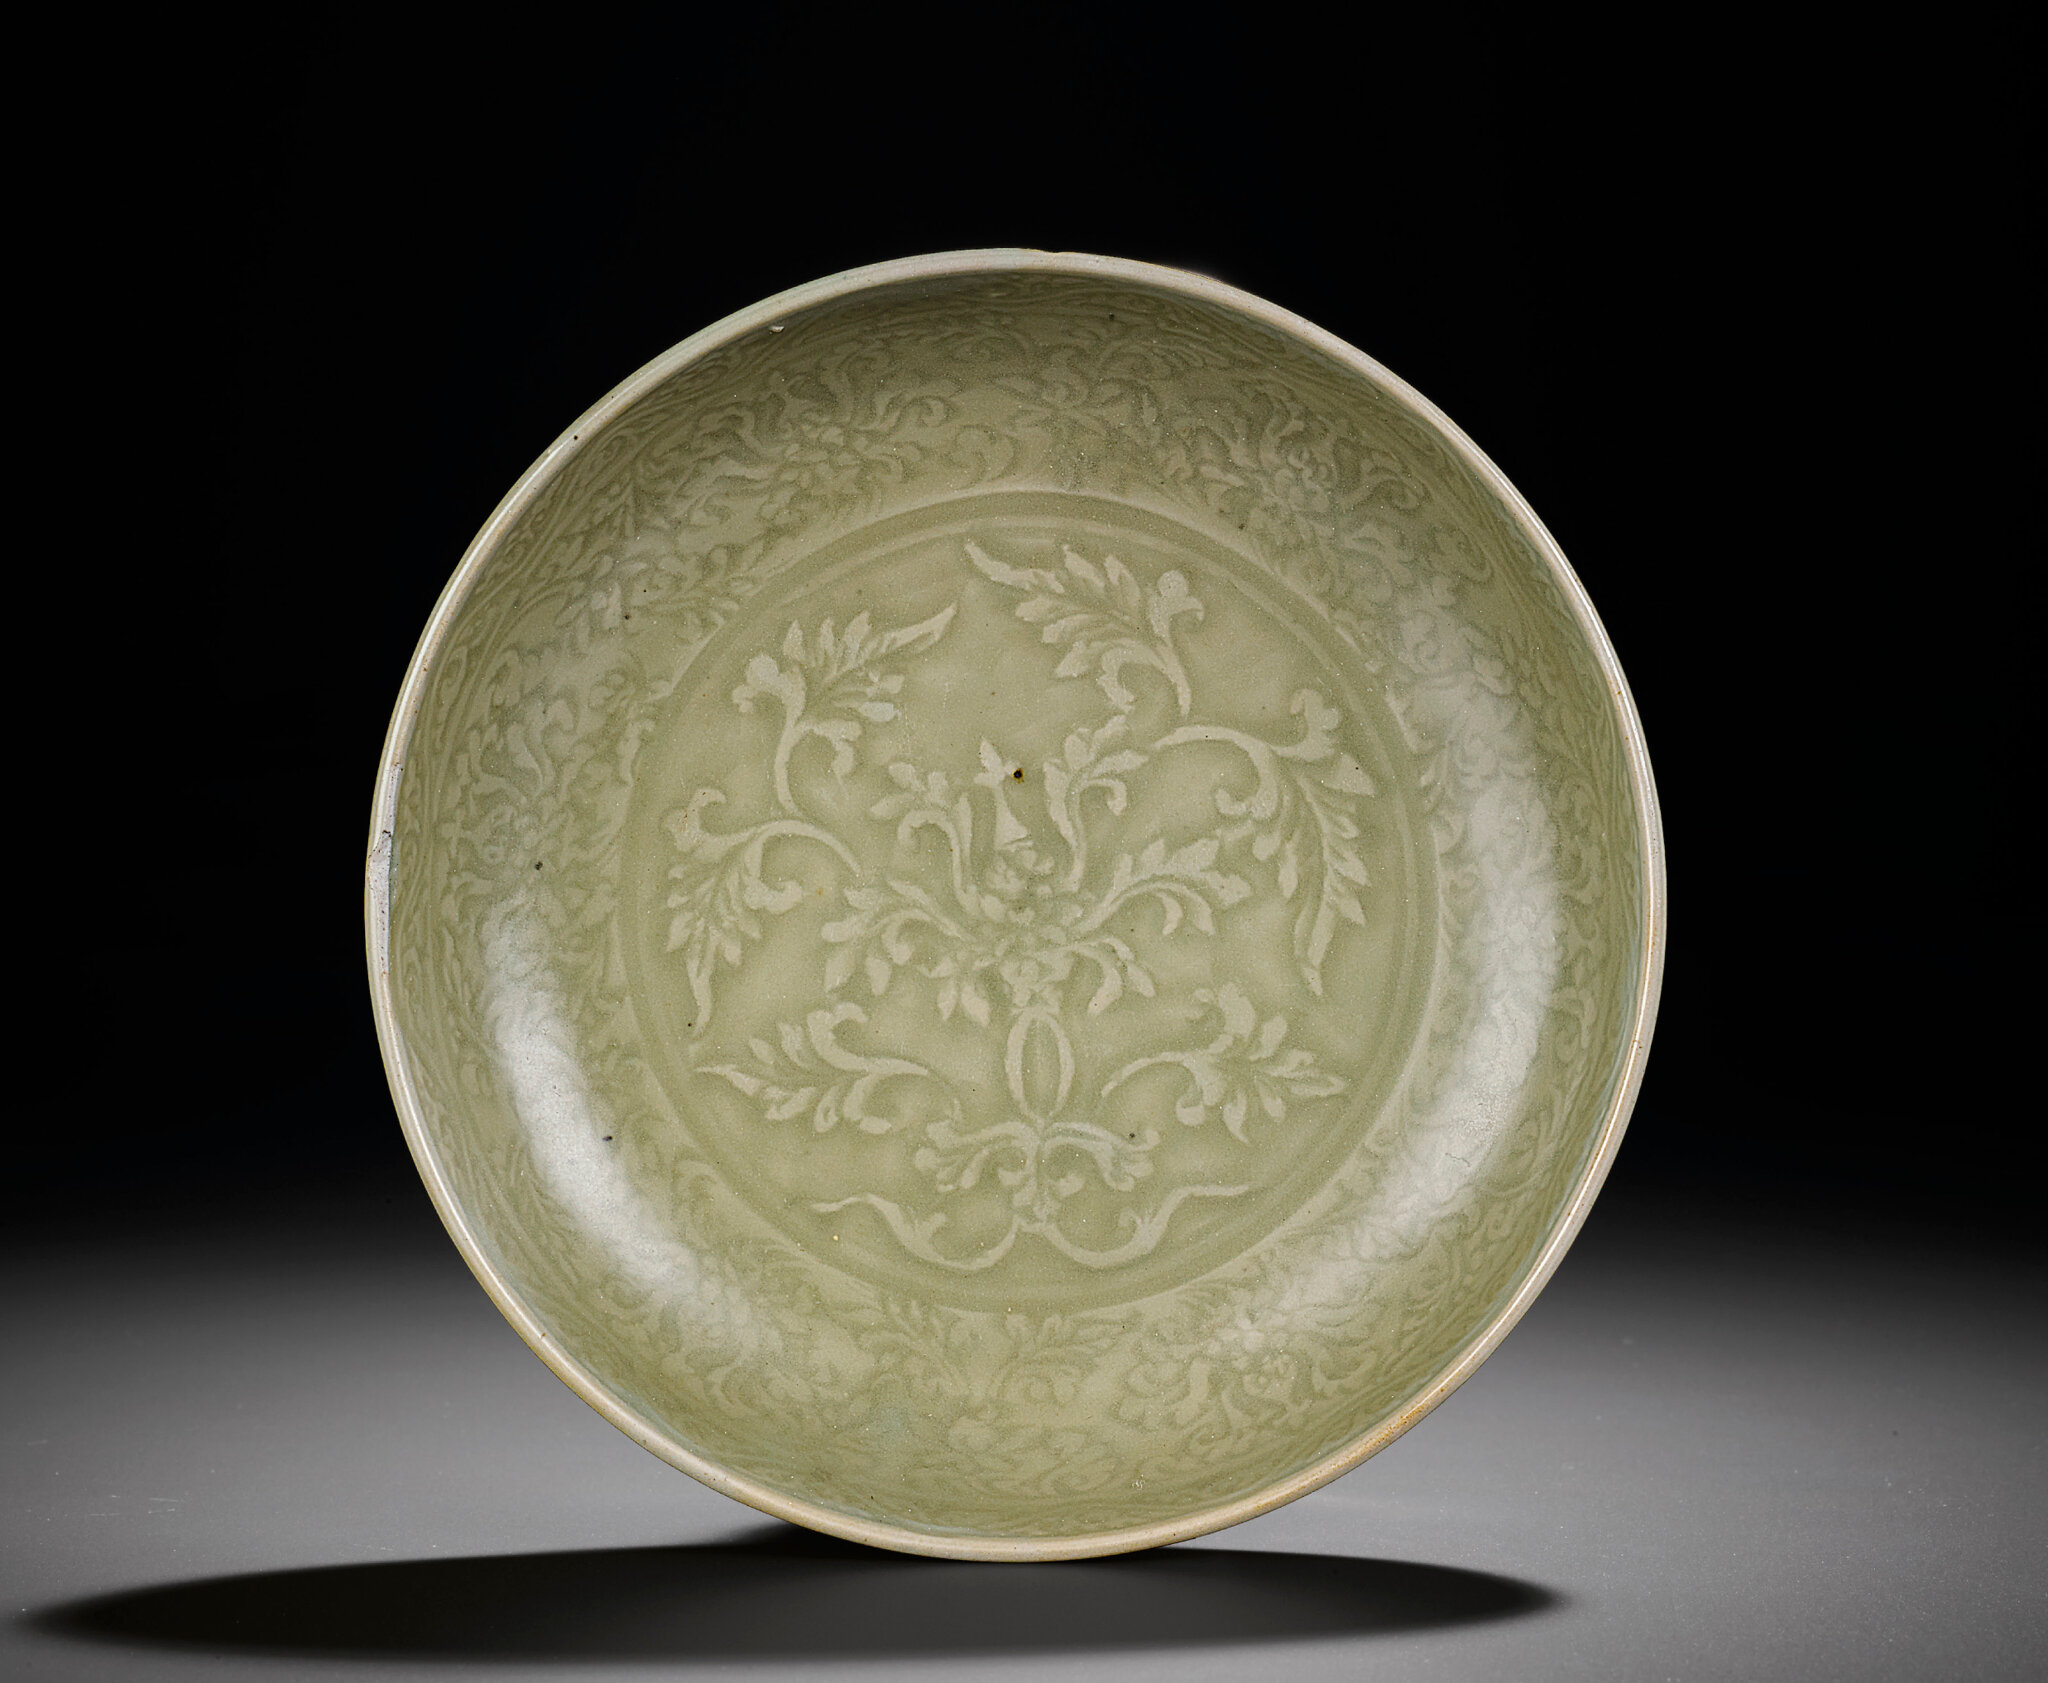 A Longquan celadon moulded 'lotus' dish, Ming dynasty, late 14th-early 15th century